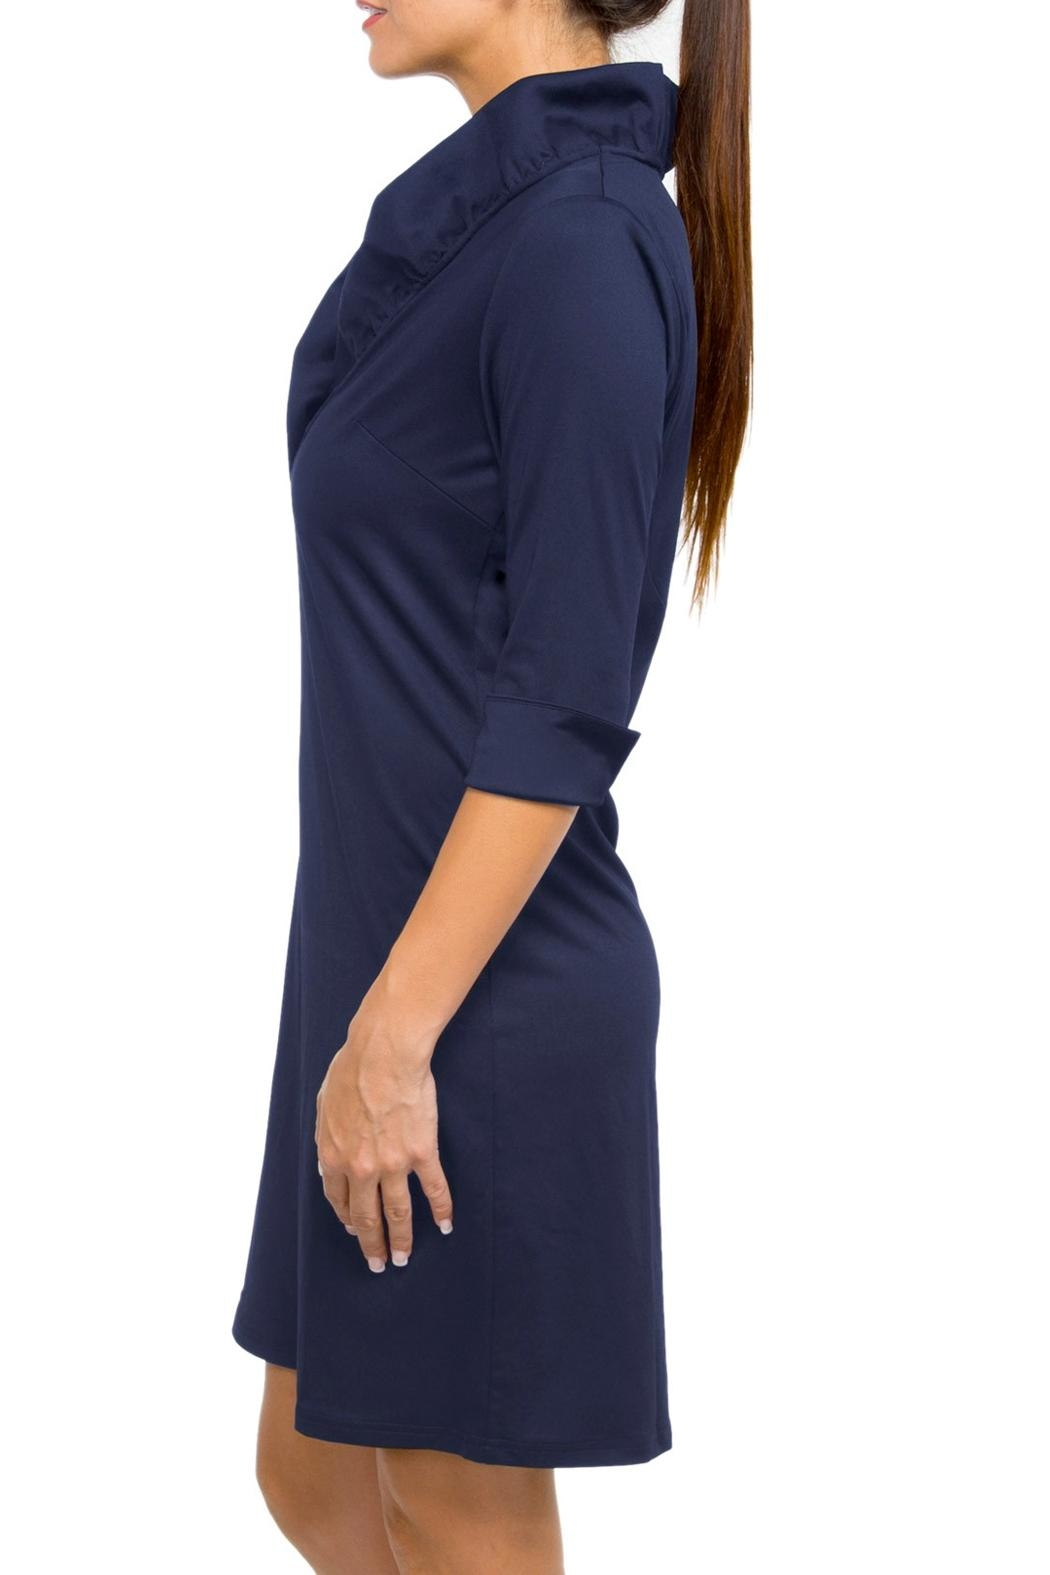 Gretchen Scott Ruffneck Jersey Dress - Front Full Image